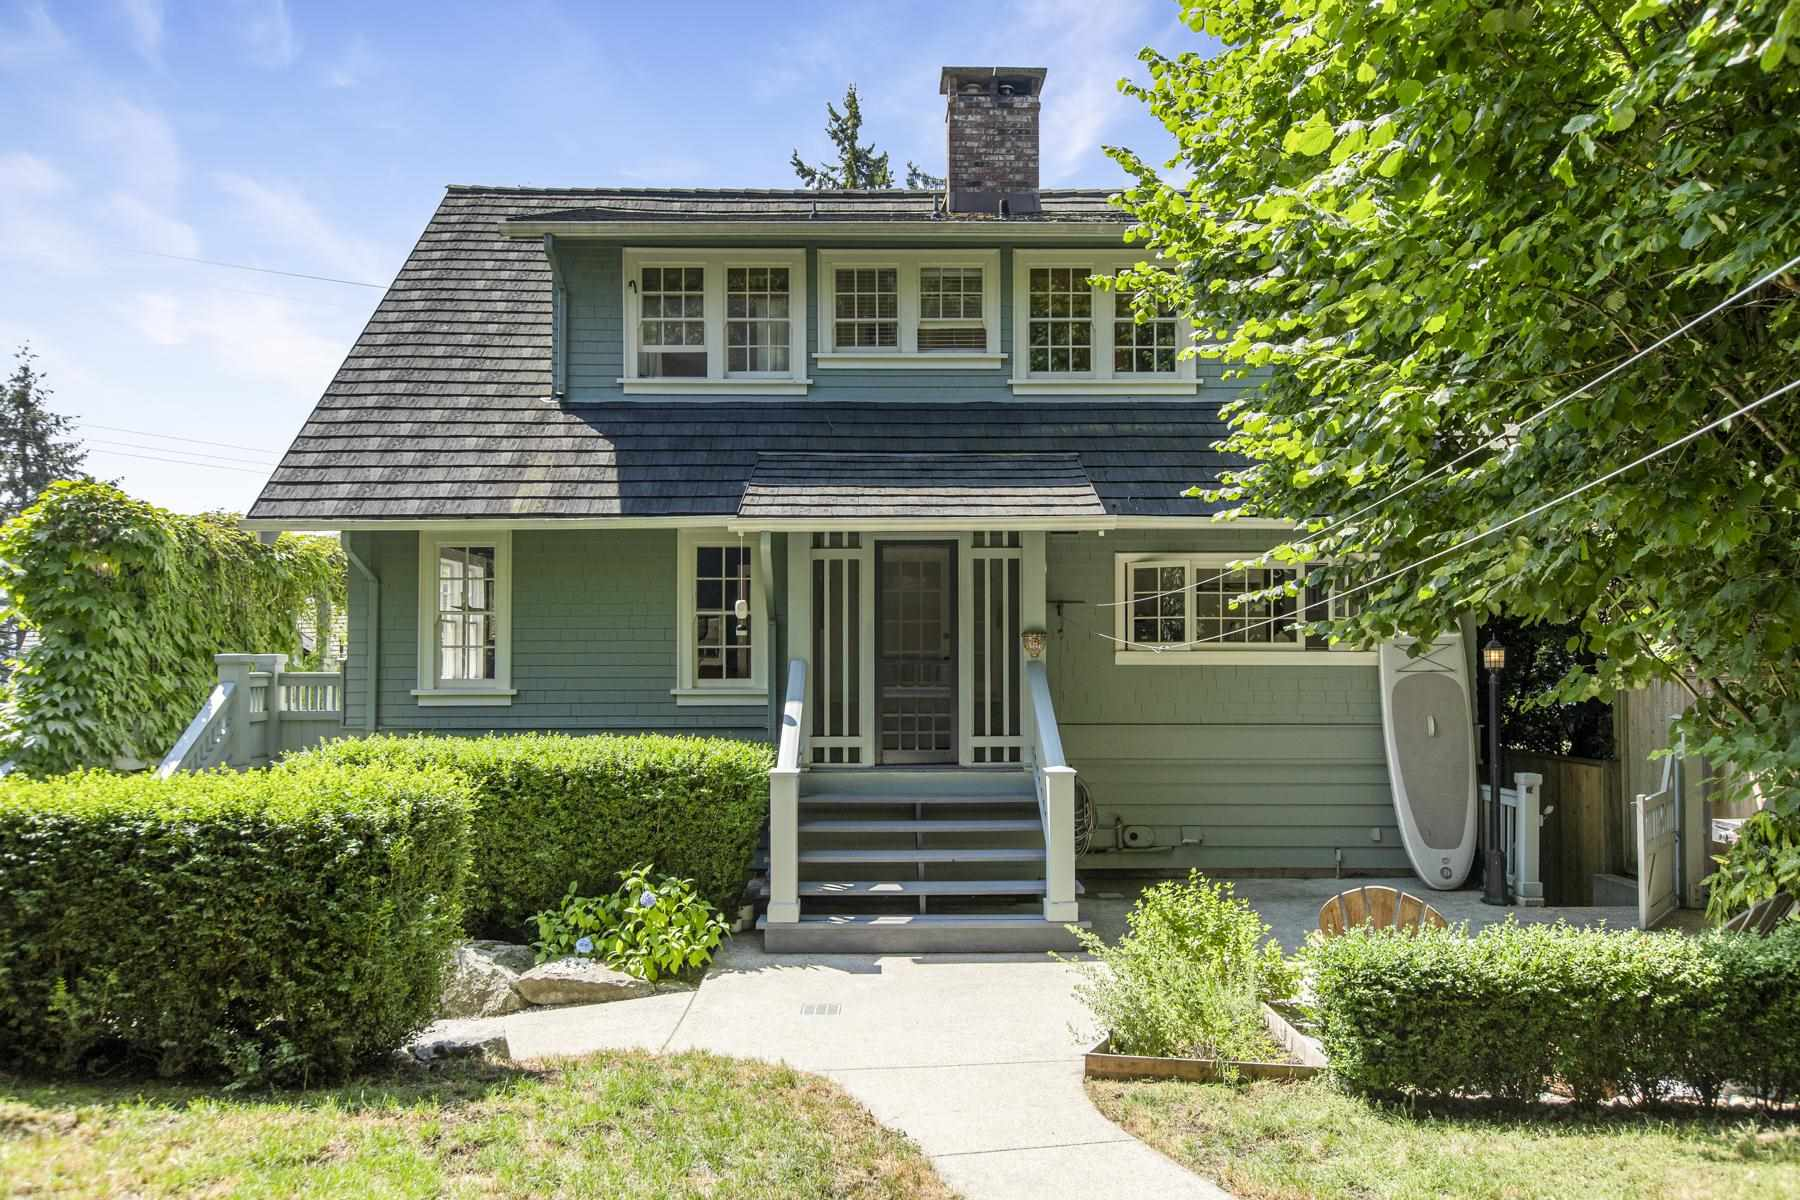 Listing image of 3321 RADCLIFFE AVENUE